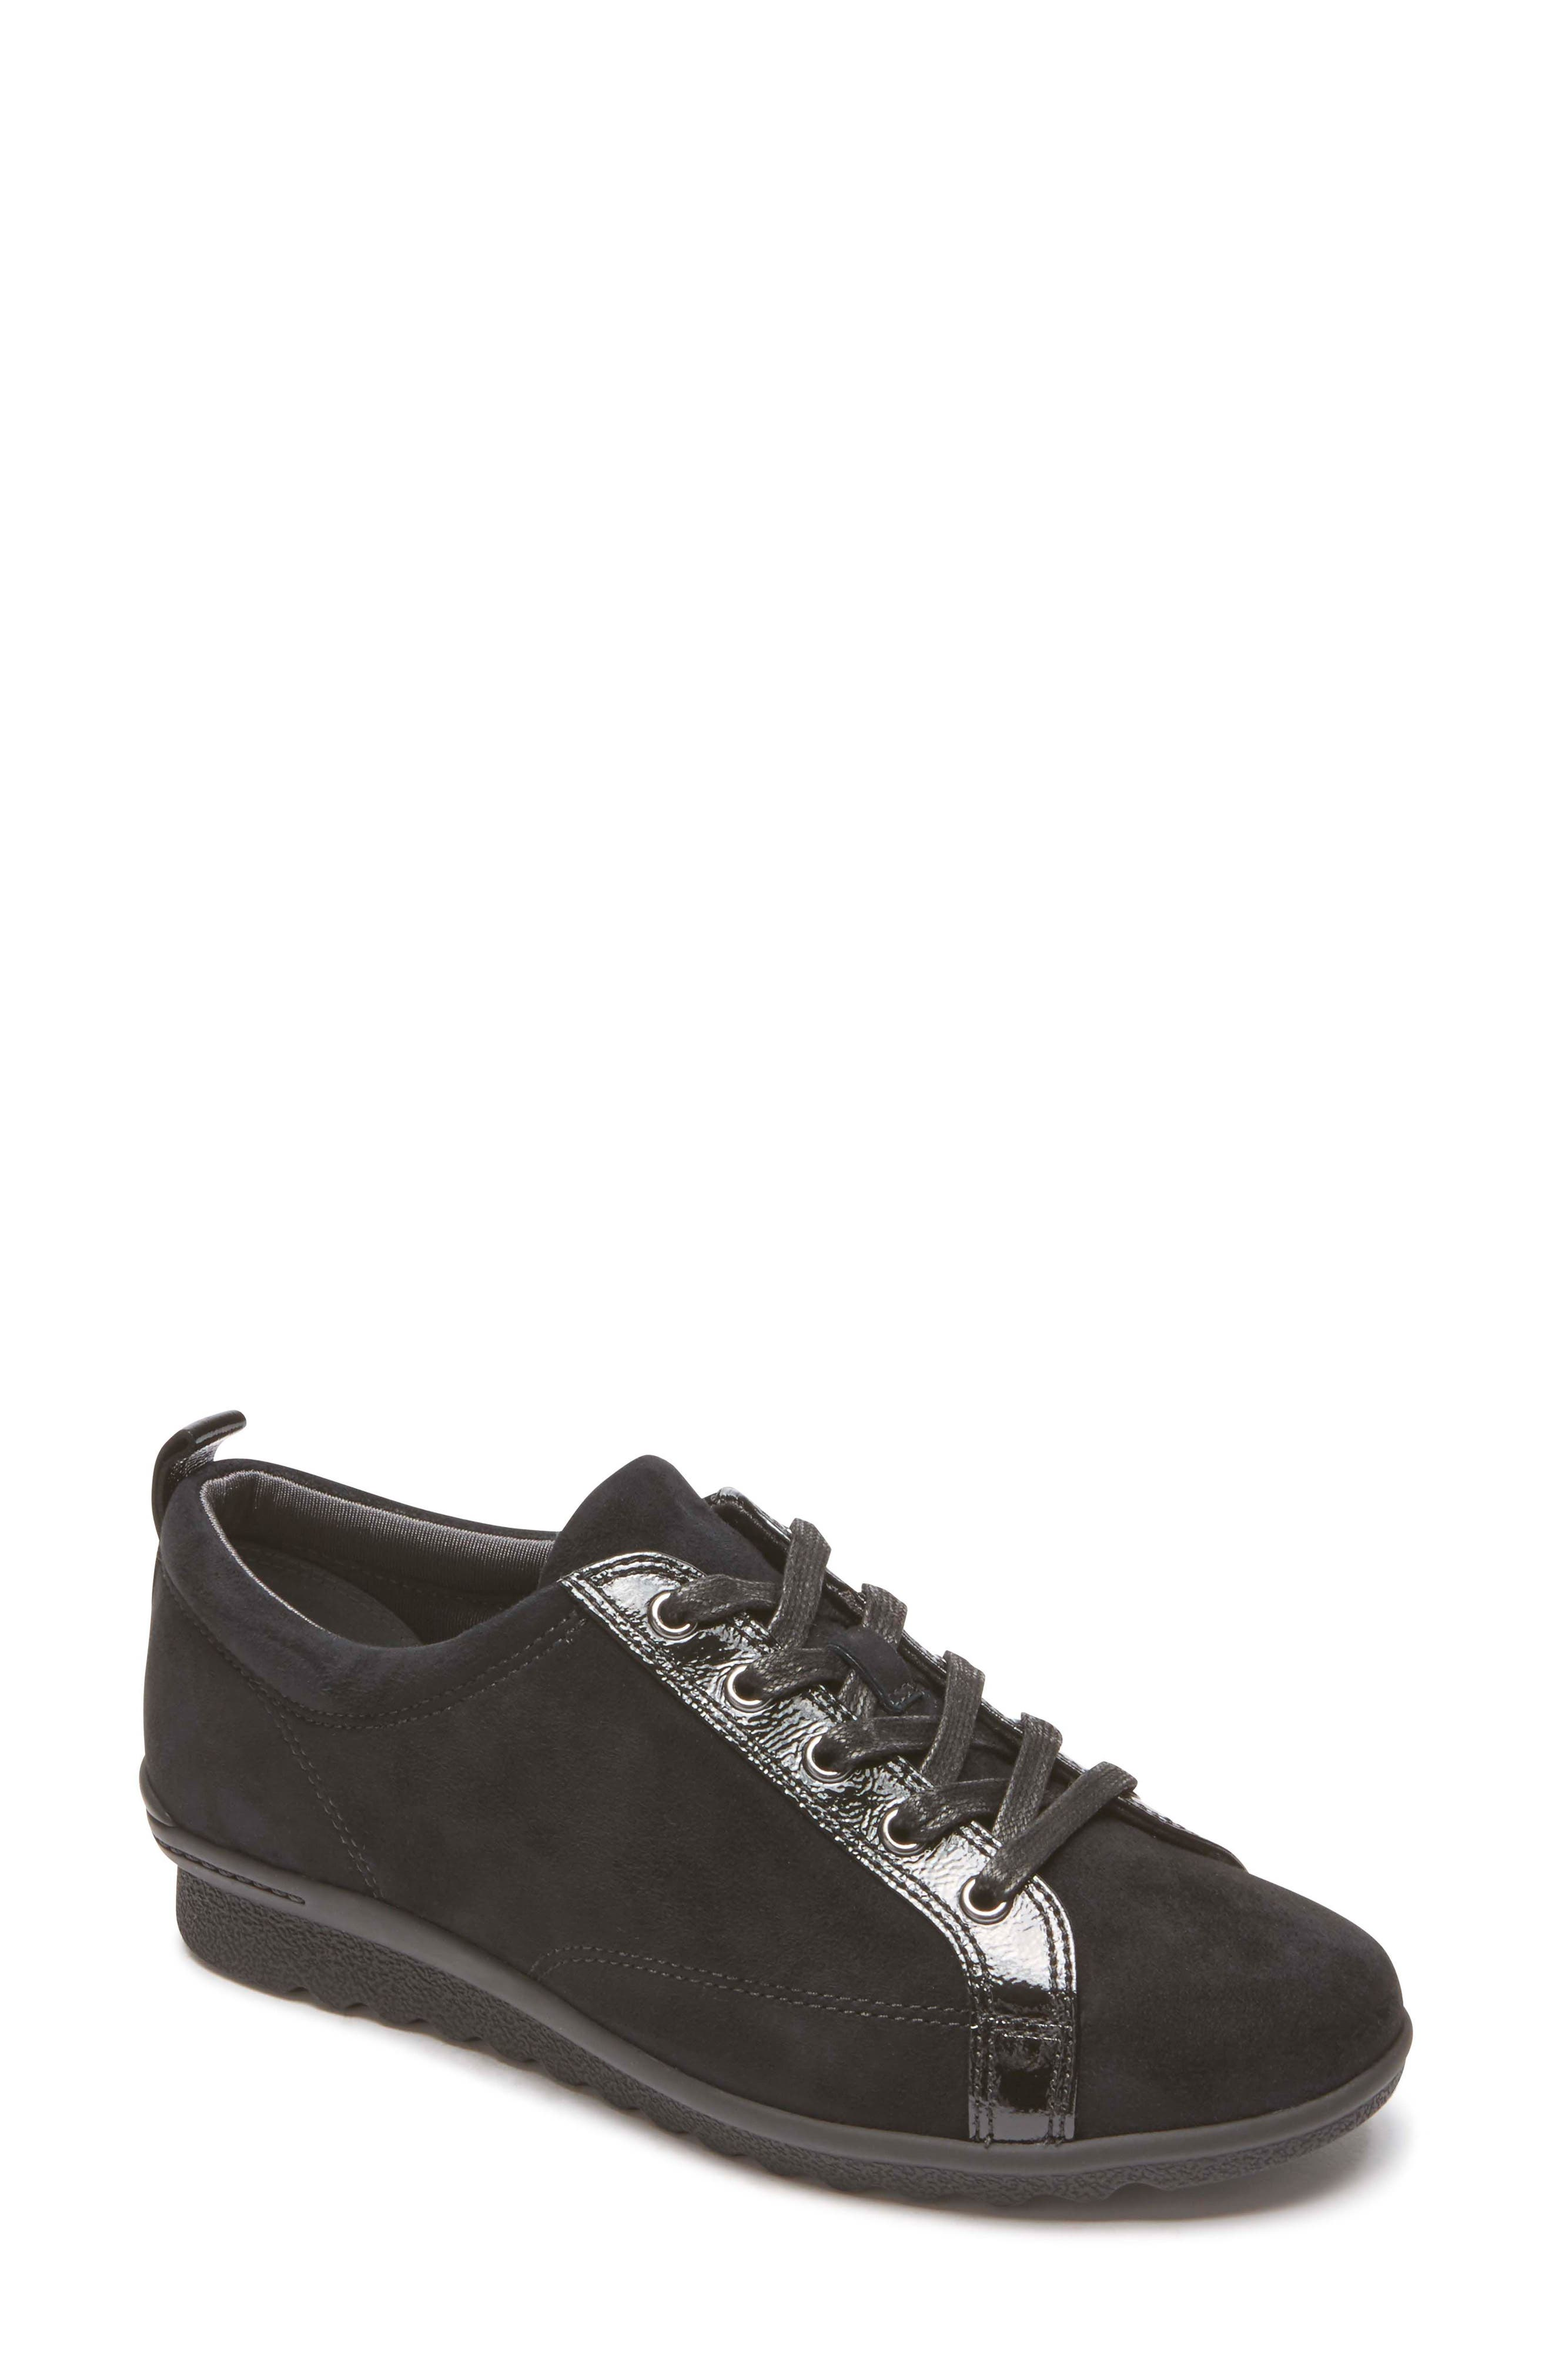 Chenole Wedge Sneaker,                             Main thumbnail 1, color,                             BLACK SUEDE